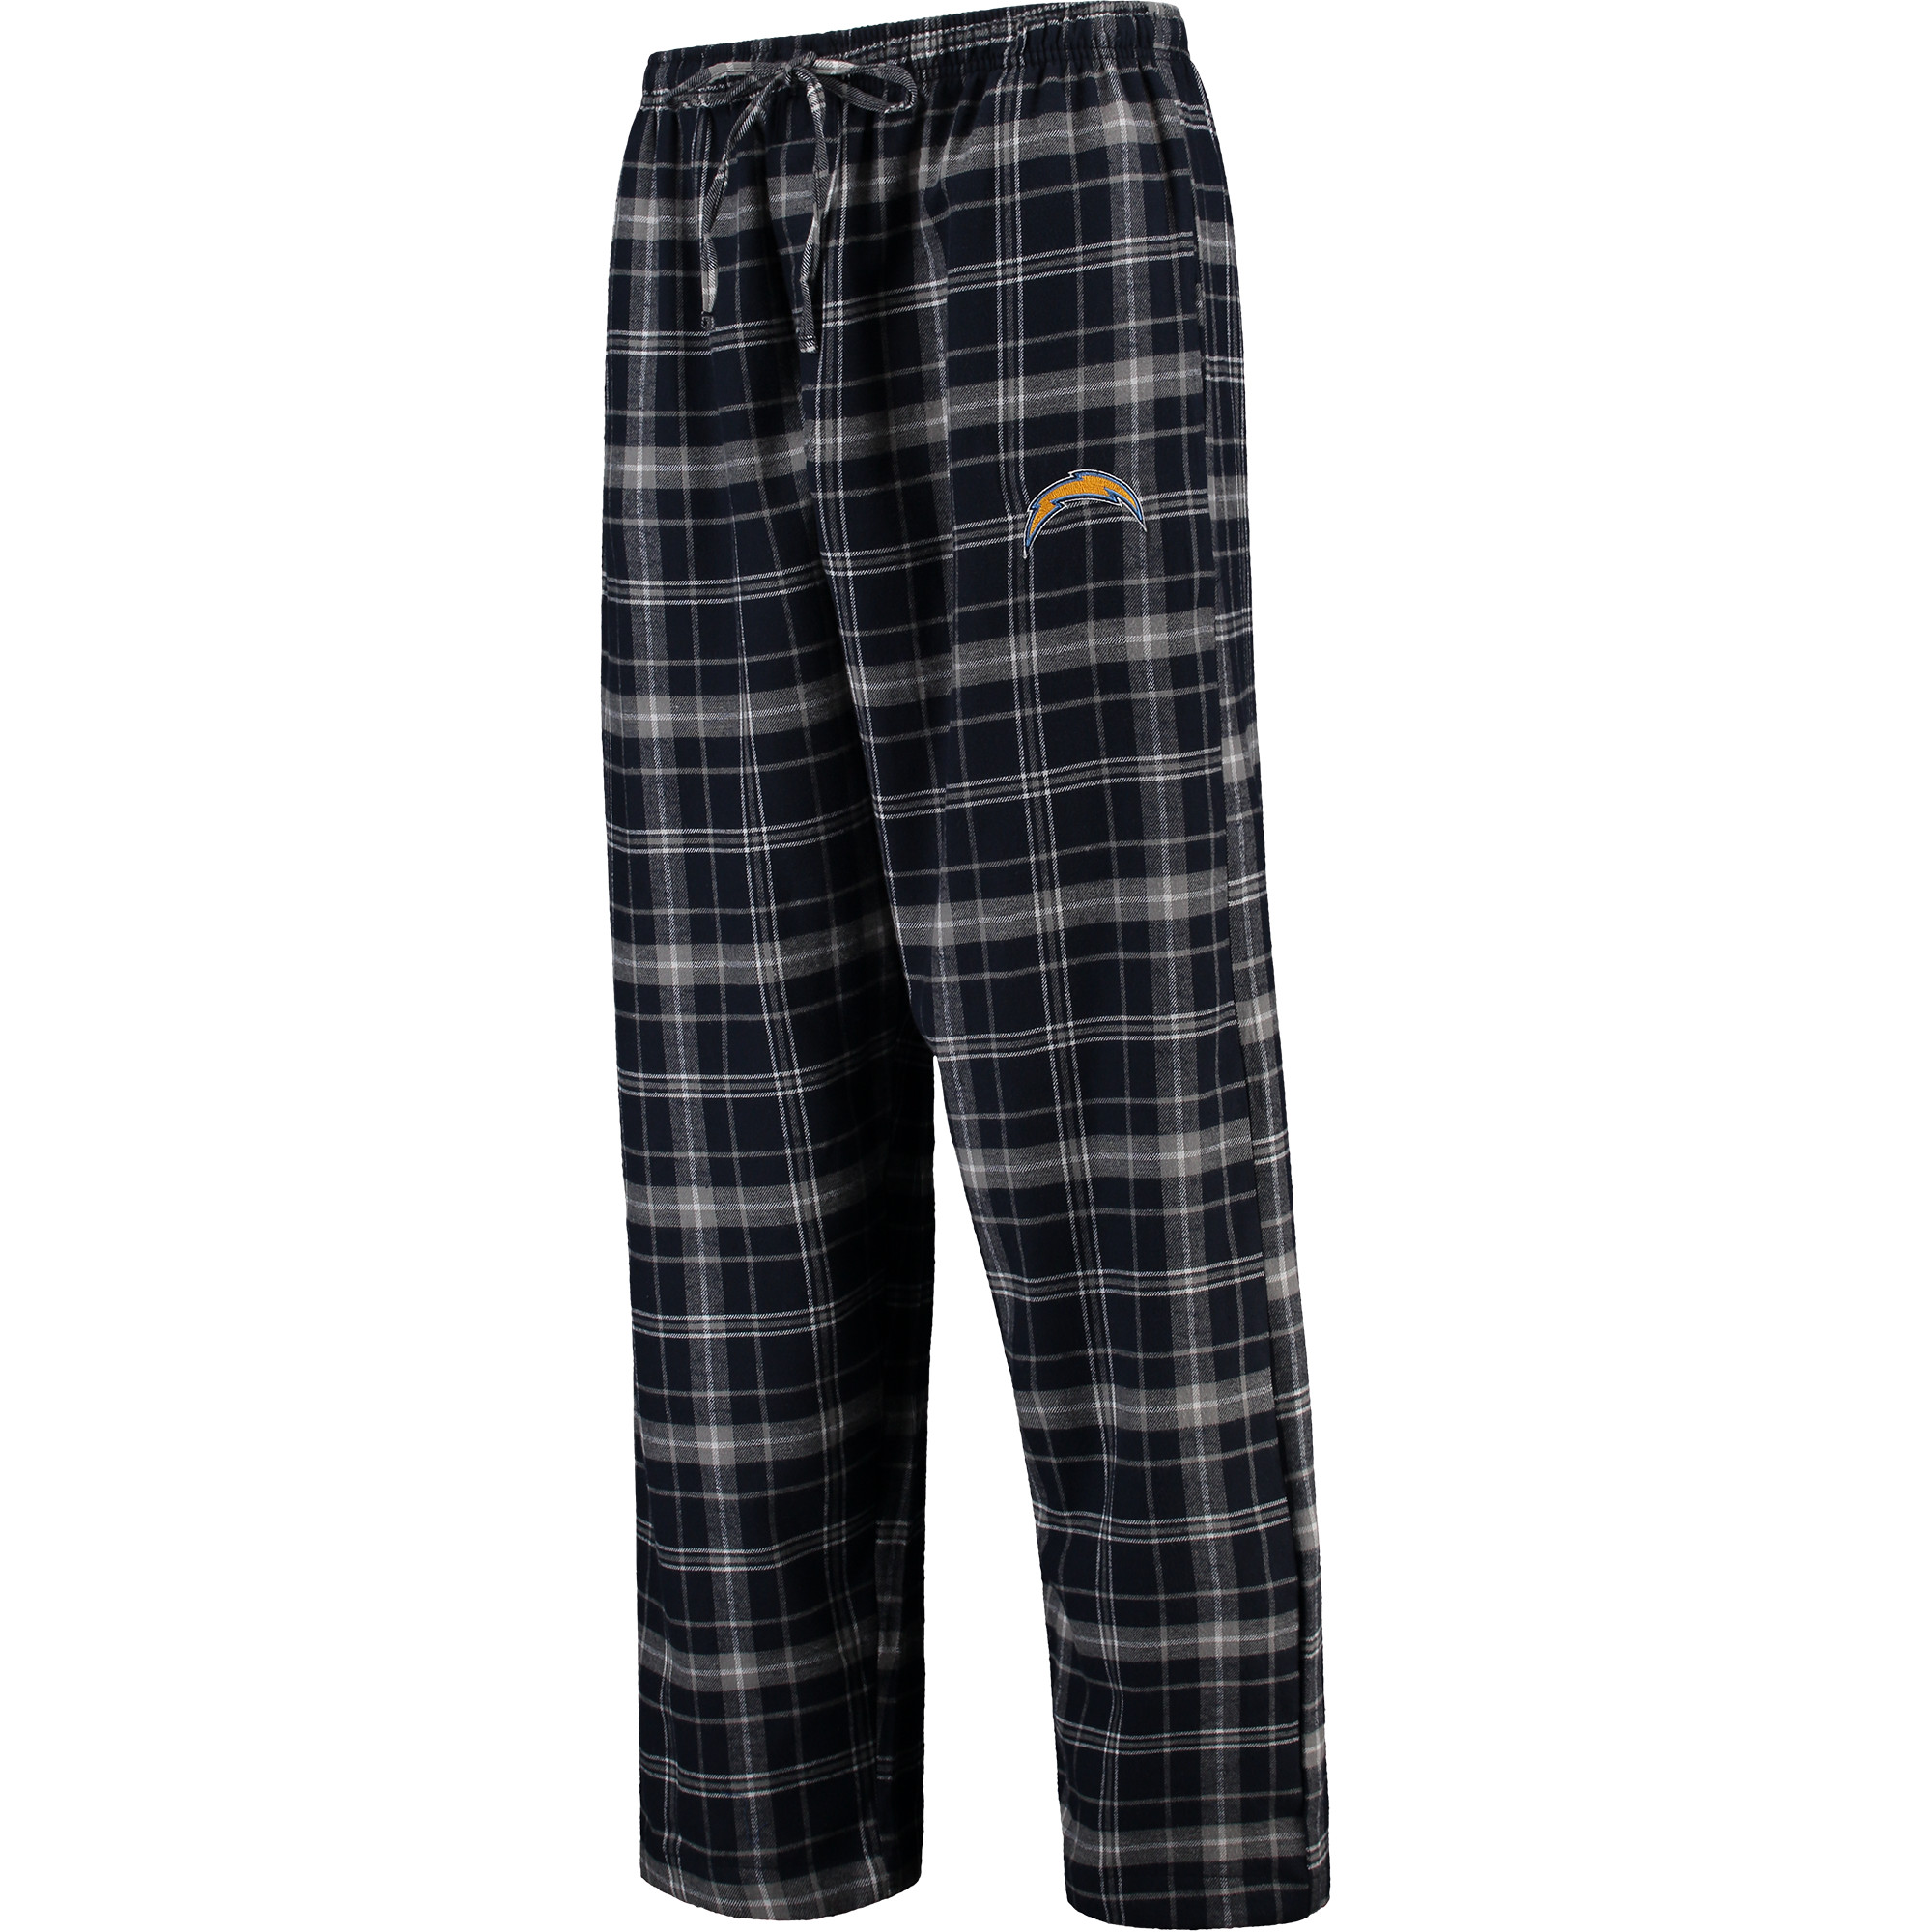 Los Angeles Chargers Concepts Sport Ultimate Plaid Flannel Pajama Pants - Navy